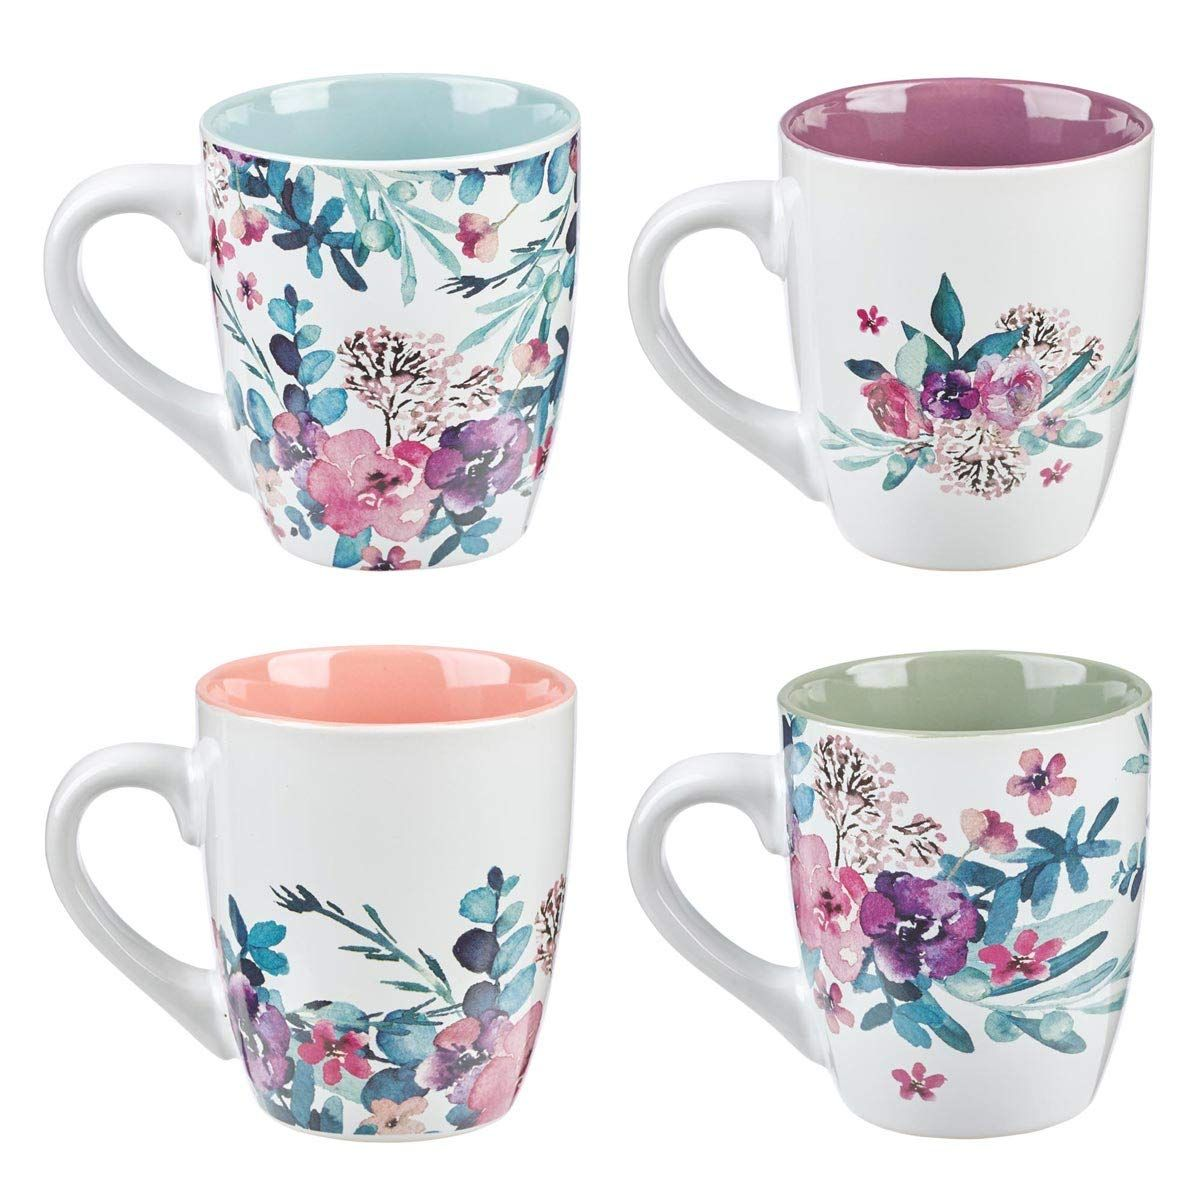 Rejoice Collection Set of 4 Coffee Mug Set mug